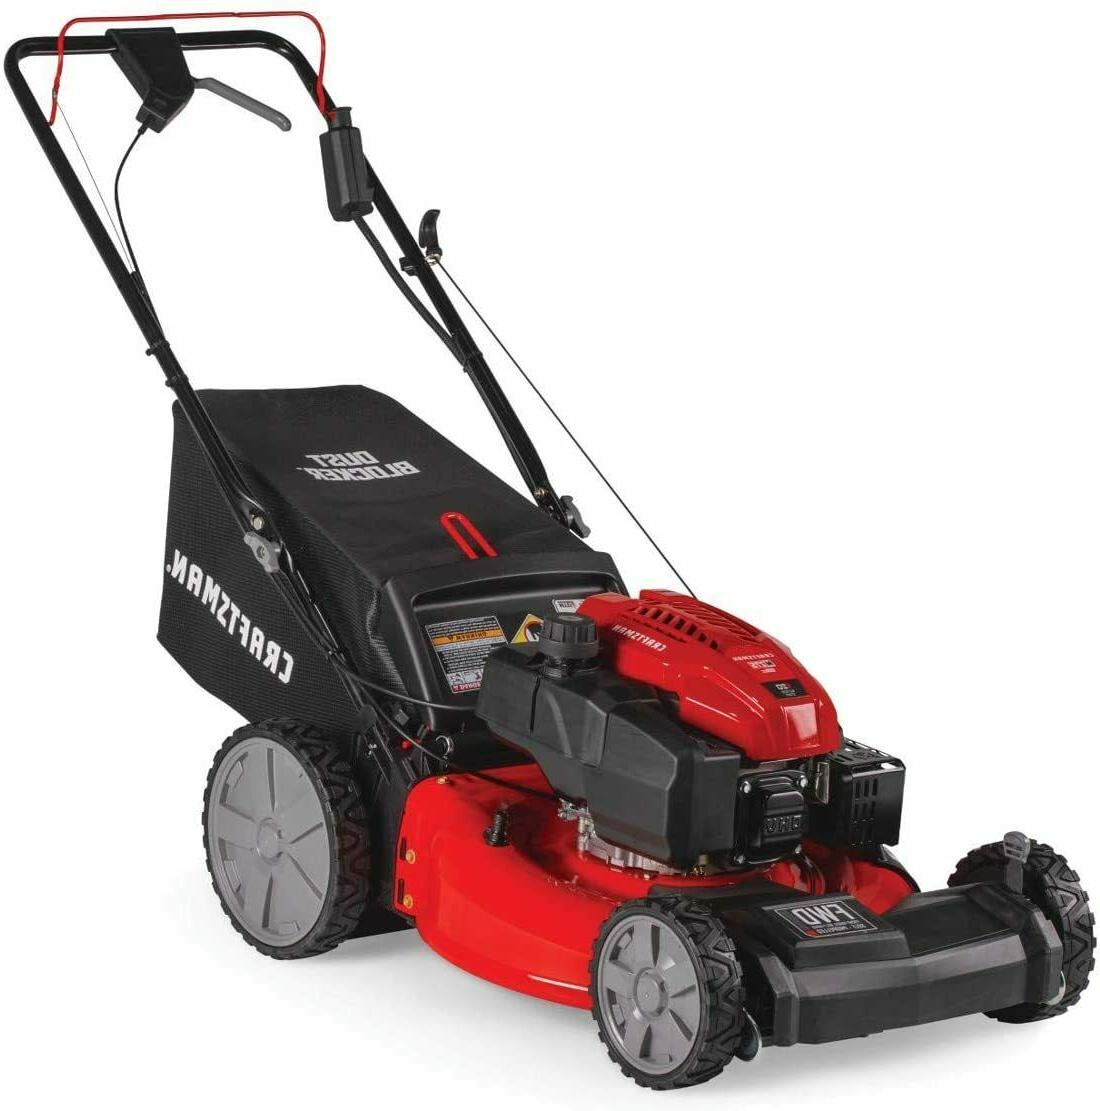 Craftsman Lawn inch Propelled, Push, Behind